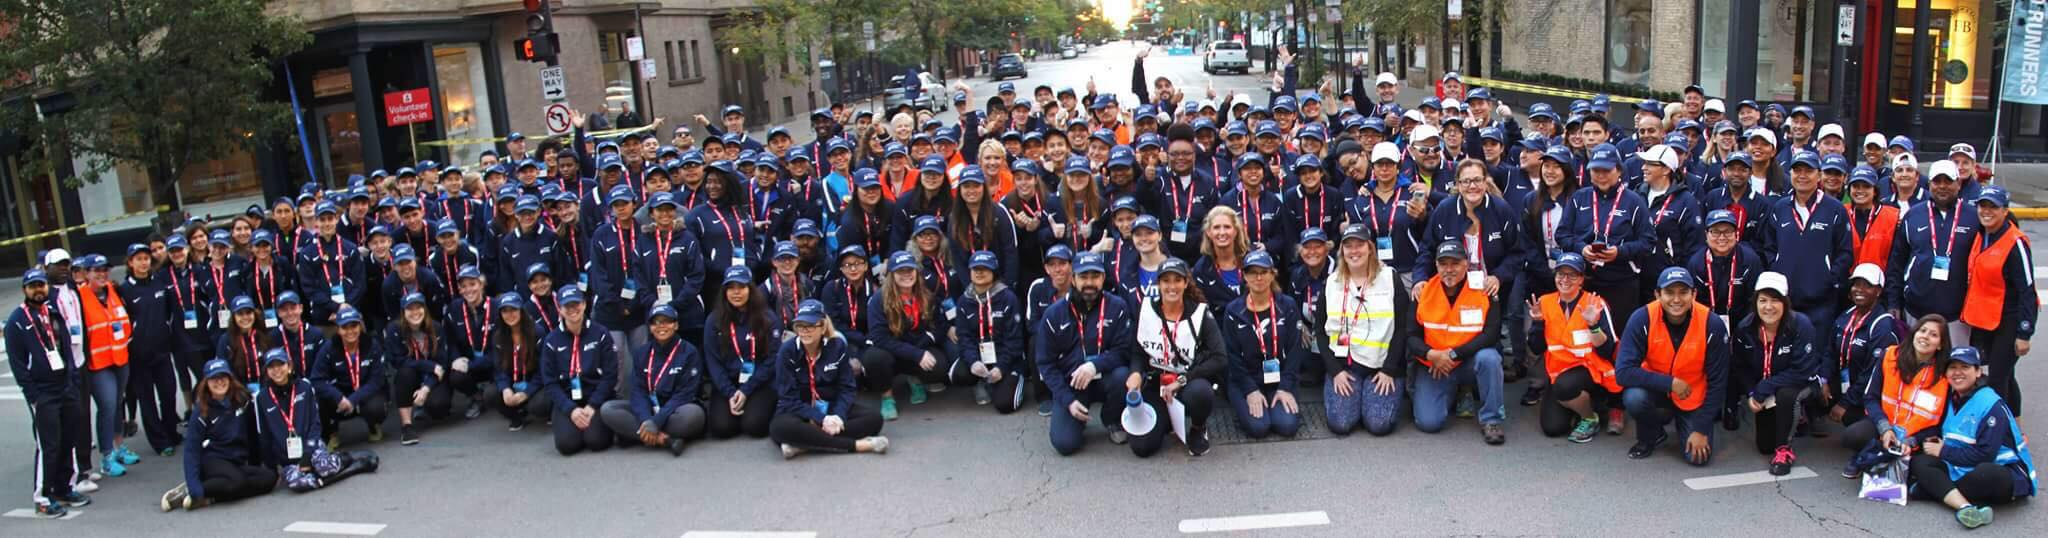 2019 Bank of America Chicago Marathon Aid Station 09 Volunteers    DATE: 10/13/2019 SHIFT: 5:30am to 12:30pm   LOCATION:  Aid Station #09 located on the corner of Wells St. Btwn Grand Ave and Hubbard st. It is Mile 11.8 of the Chicago Marathon course.  We welcome all genders, sexualitites and STUDENTS 16 years and older to volunteer!